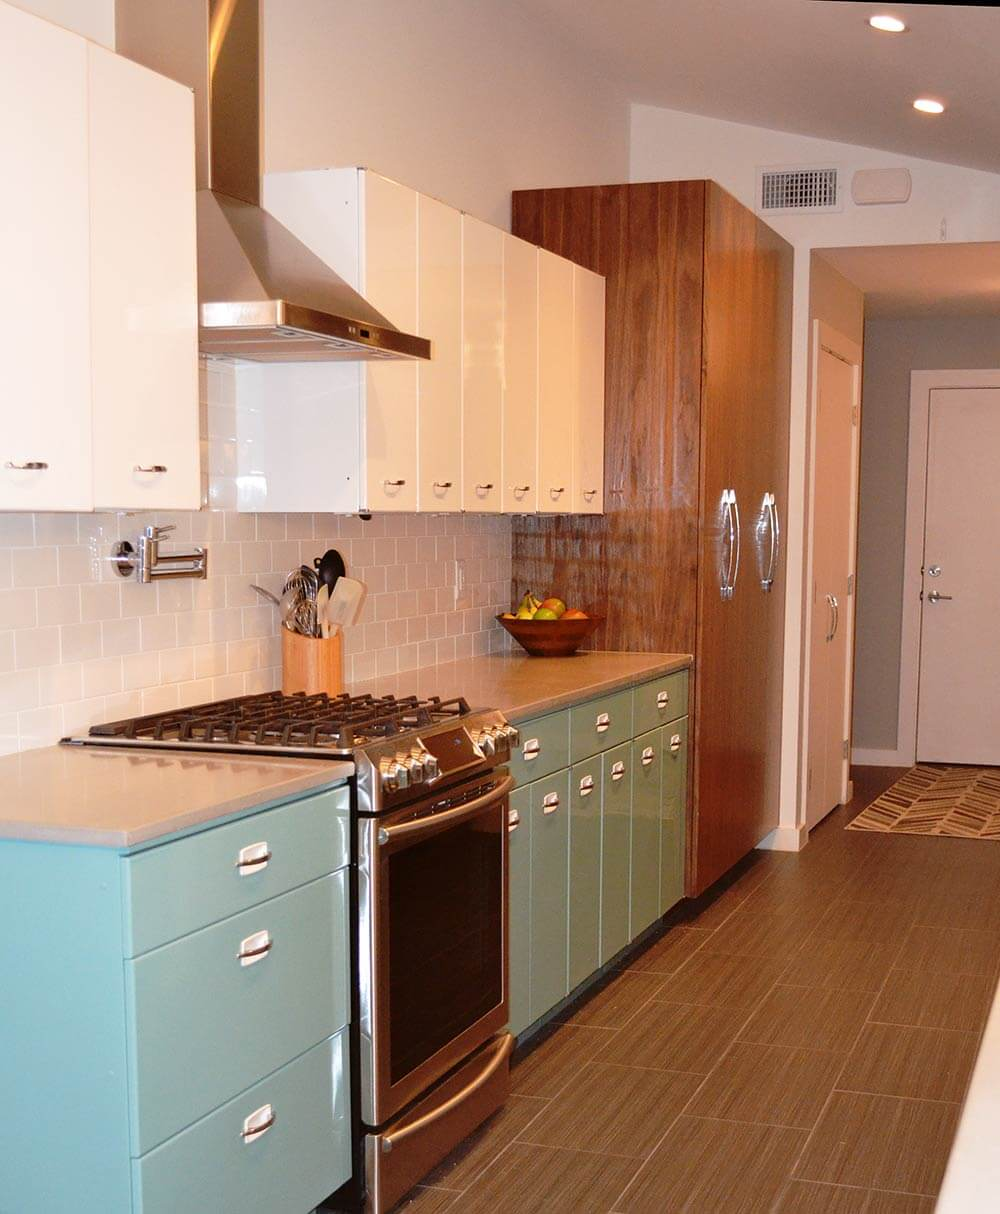 Kitchen In A Cabinet: Sam Has A Great Experience With Powder Coating Her Vintage